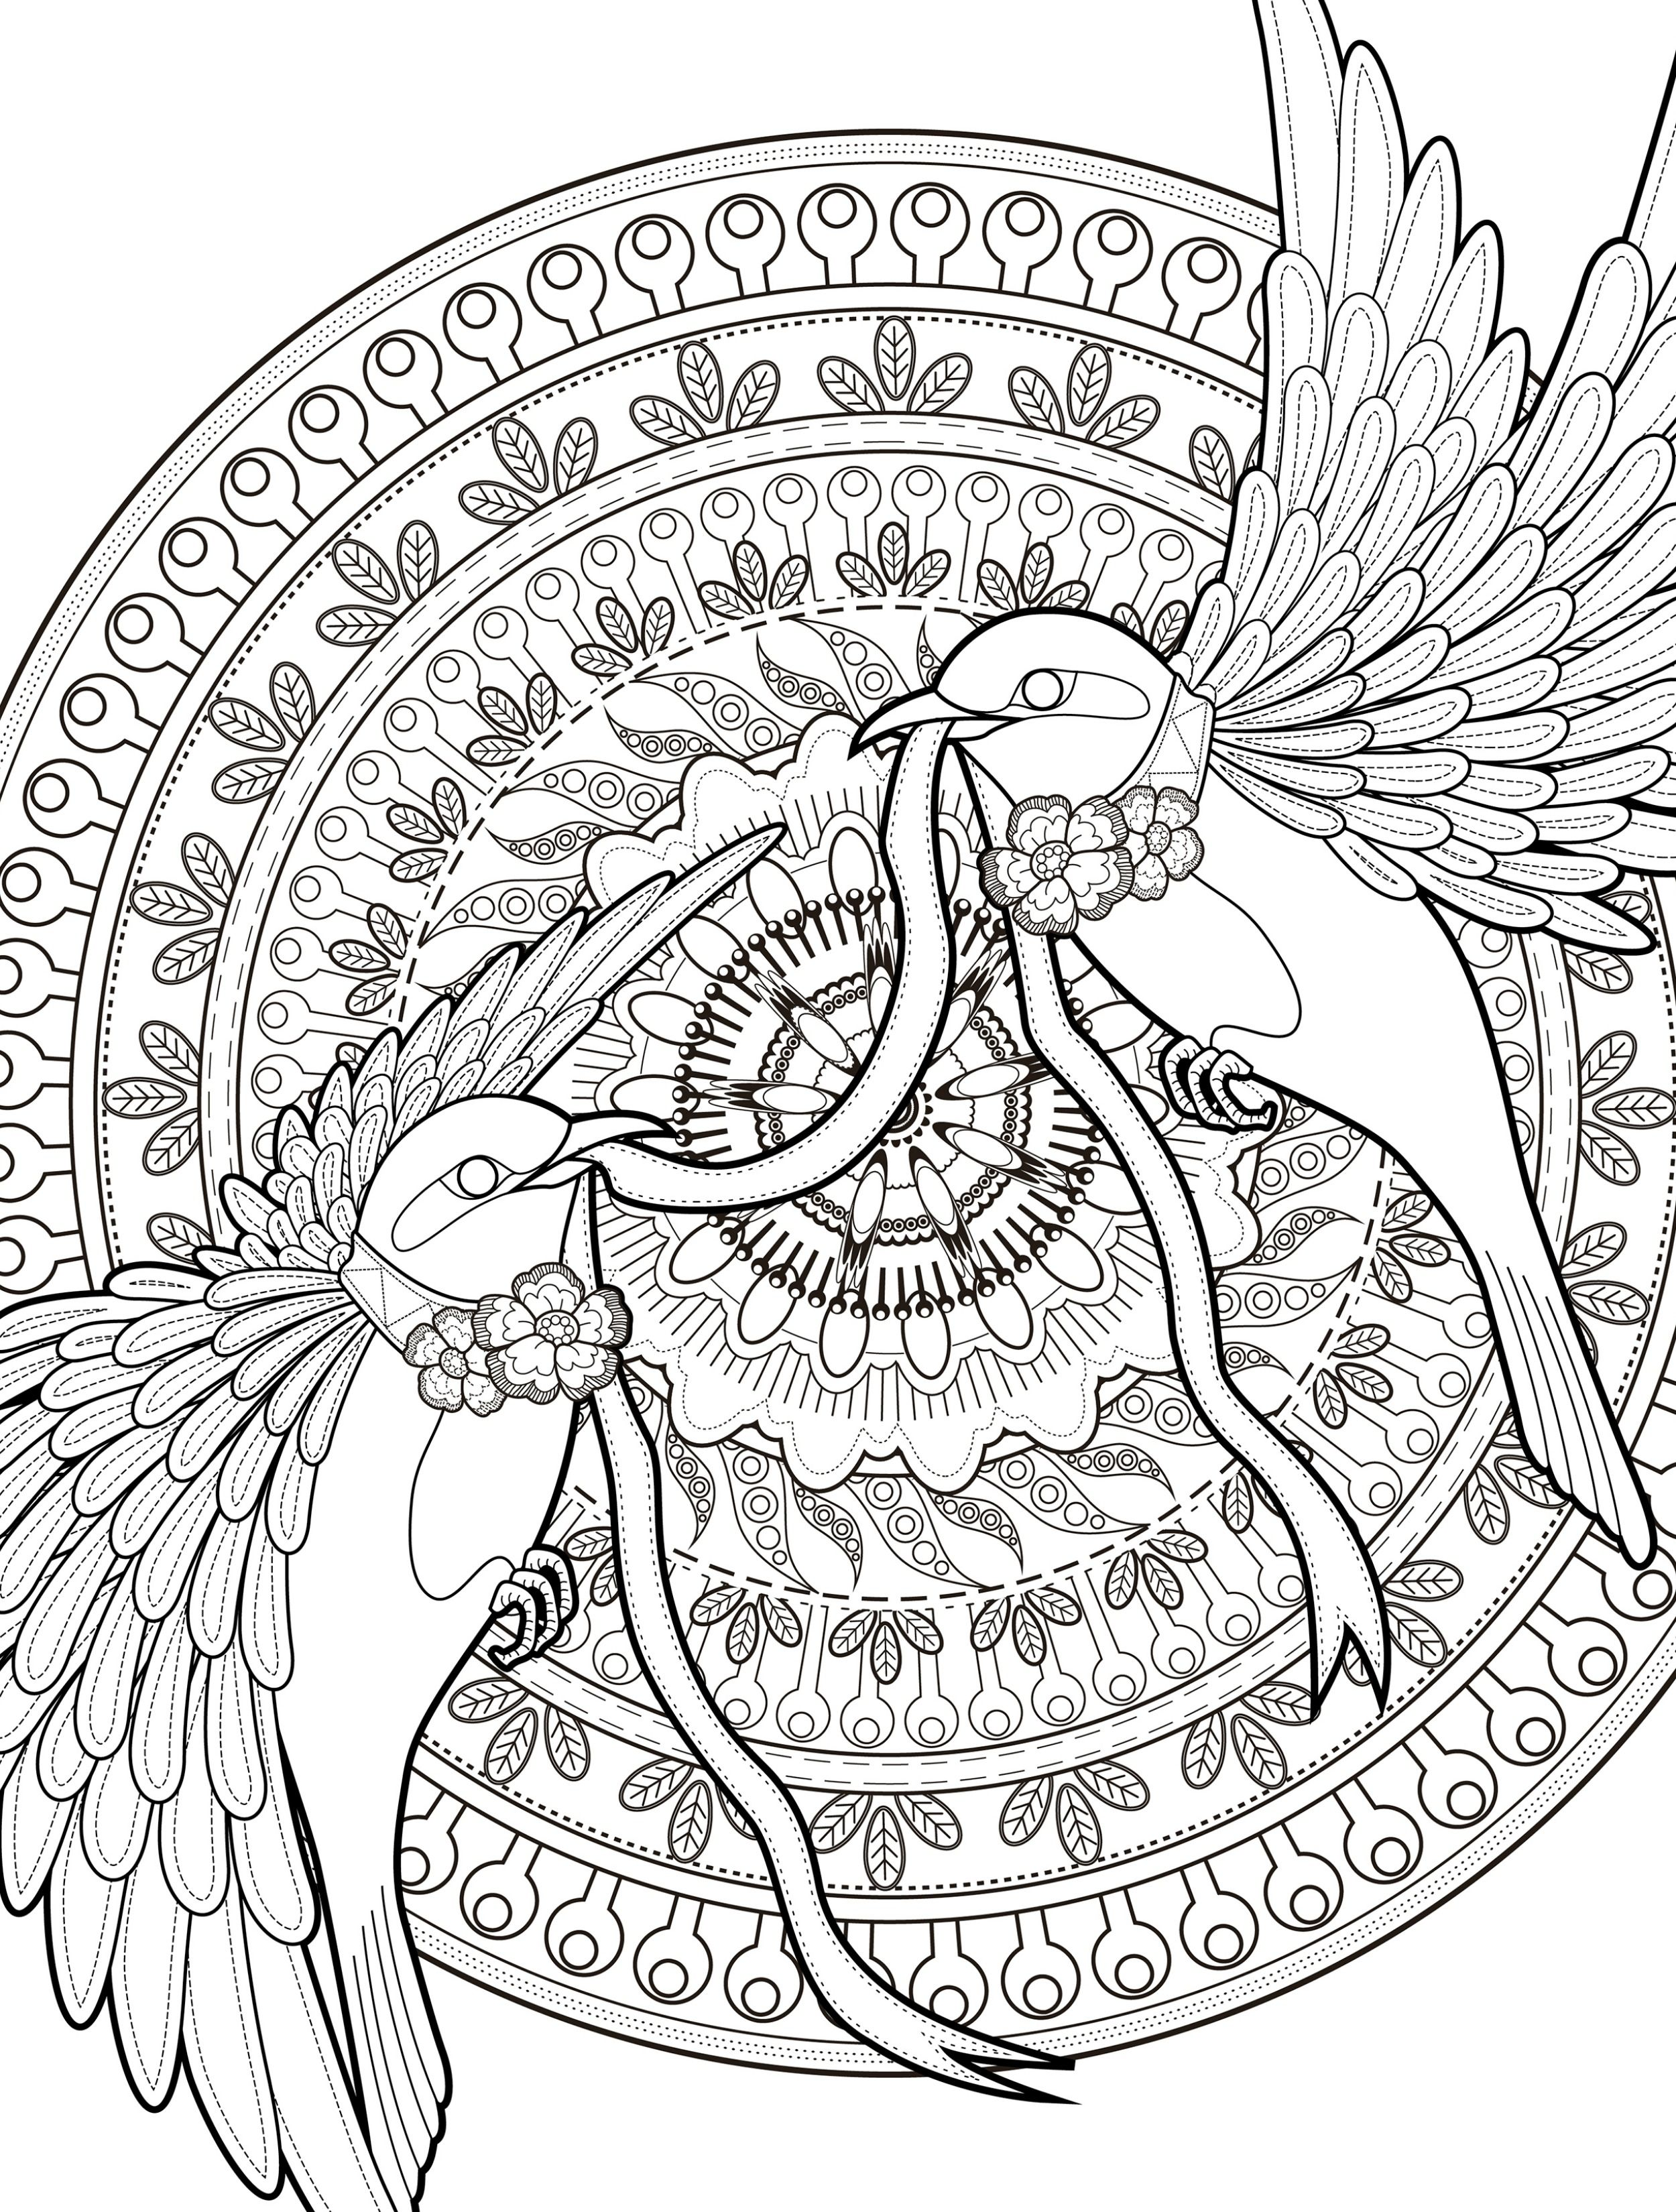 Downloadable butterfly coloring pages - 24 More Free Printable Adult Coloring Pages Page 24 Of 25